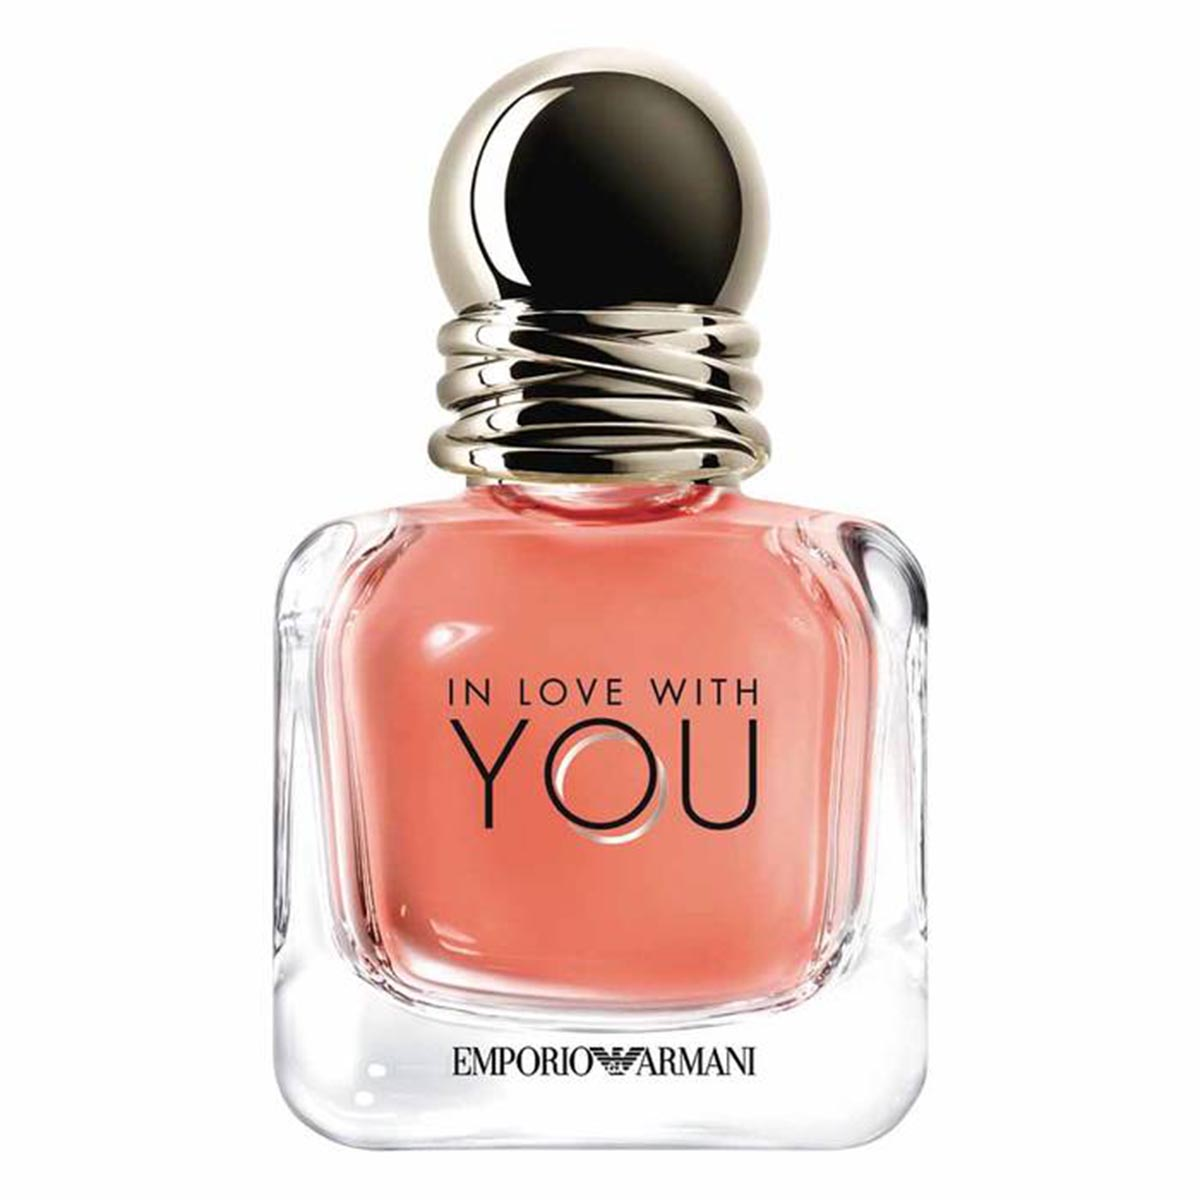 Giorgio armani in love with you eau de parfum 50ml vaporizador